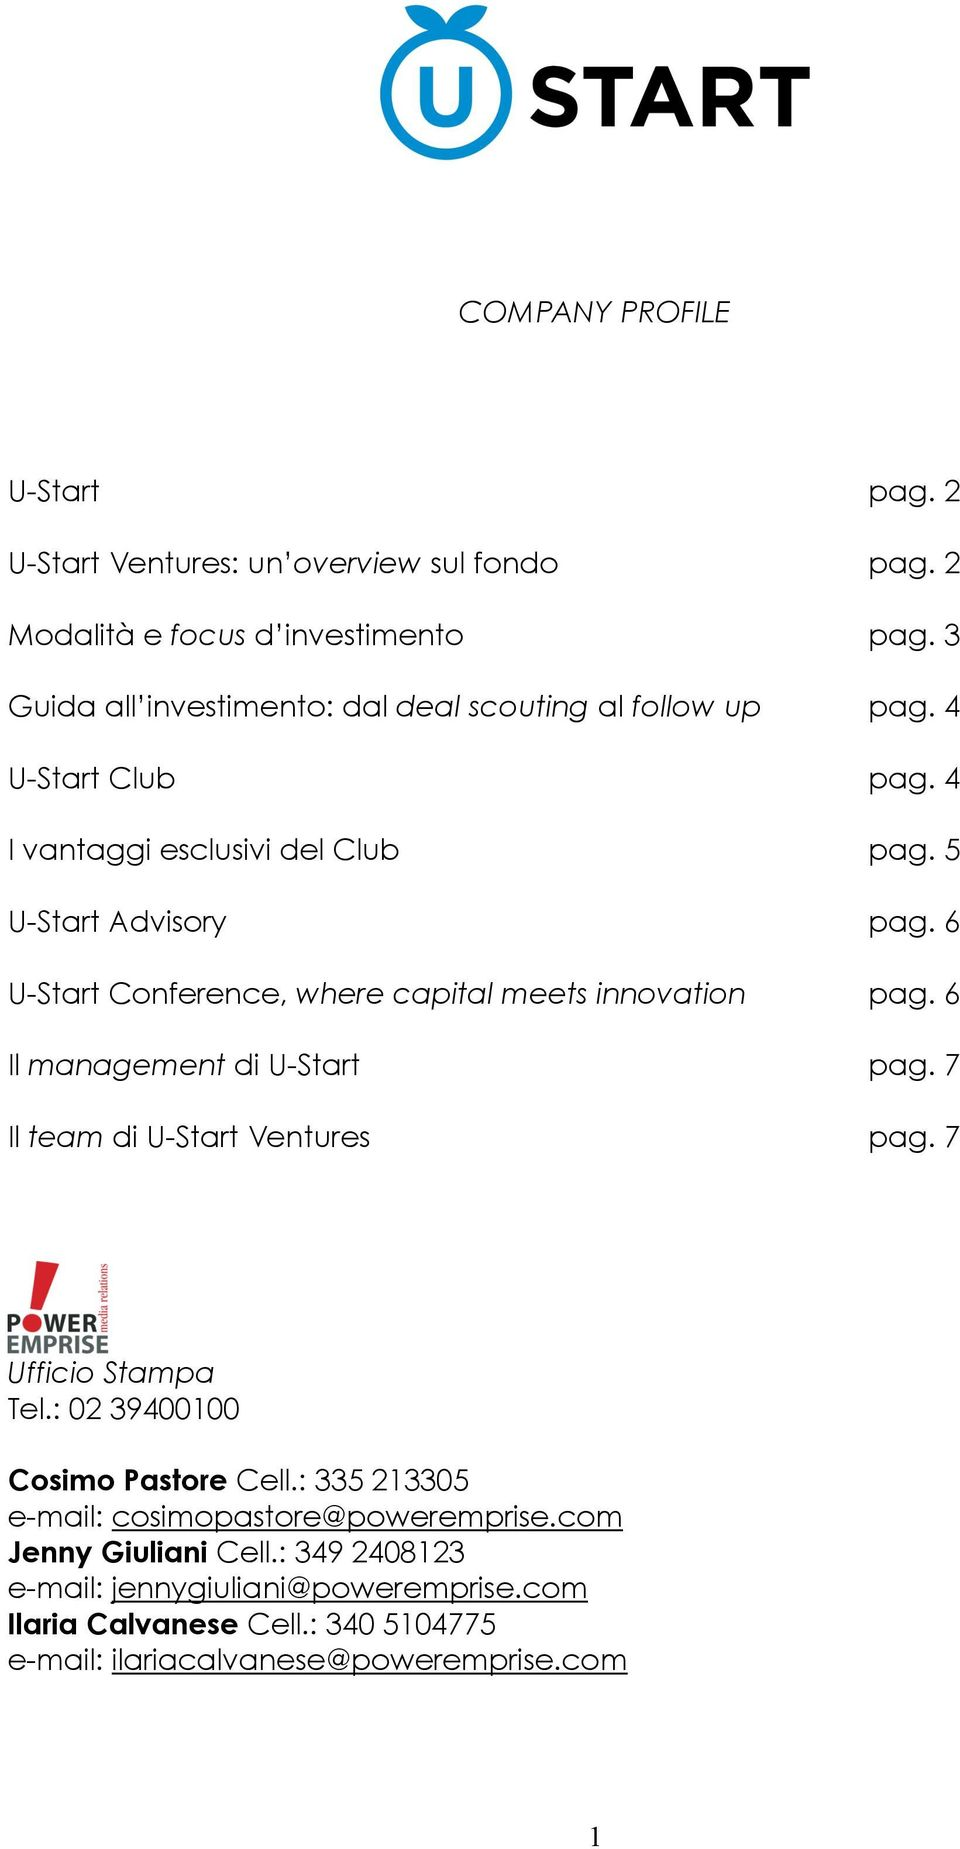 6 U-Start Conference, where capital meets innovation pag. 6 Il management di U-Start pag. 7 Il team di U-Start Ventures pag. 7 Ufficio Stampa Tel.